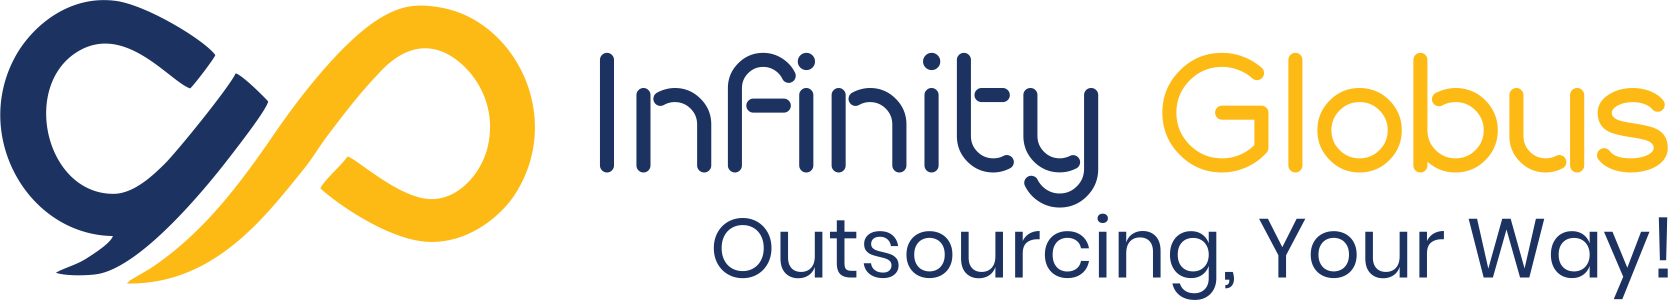 Cost-Effective yet Professional Outsourced Bookkeeping Services in the USA - Infinity Globus